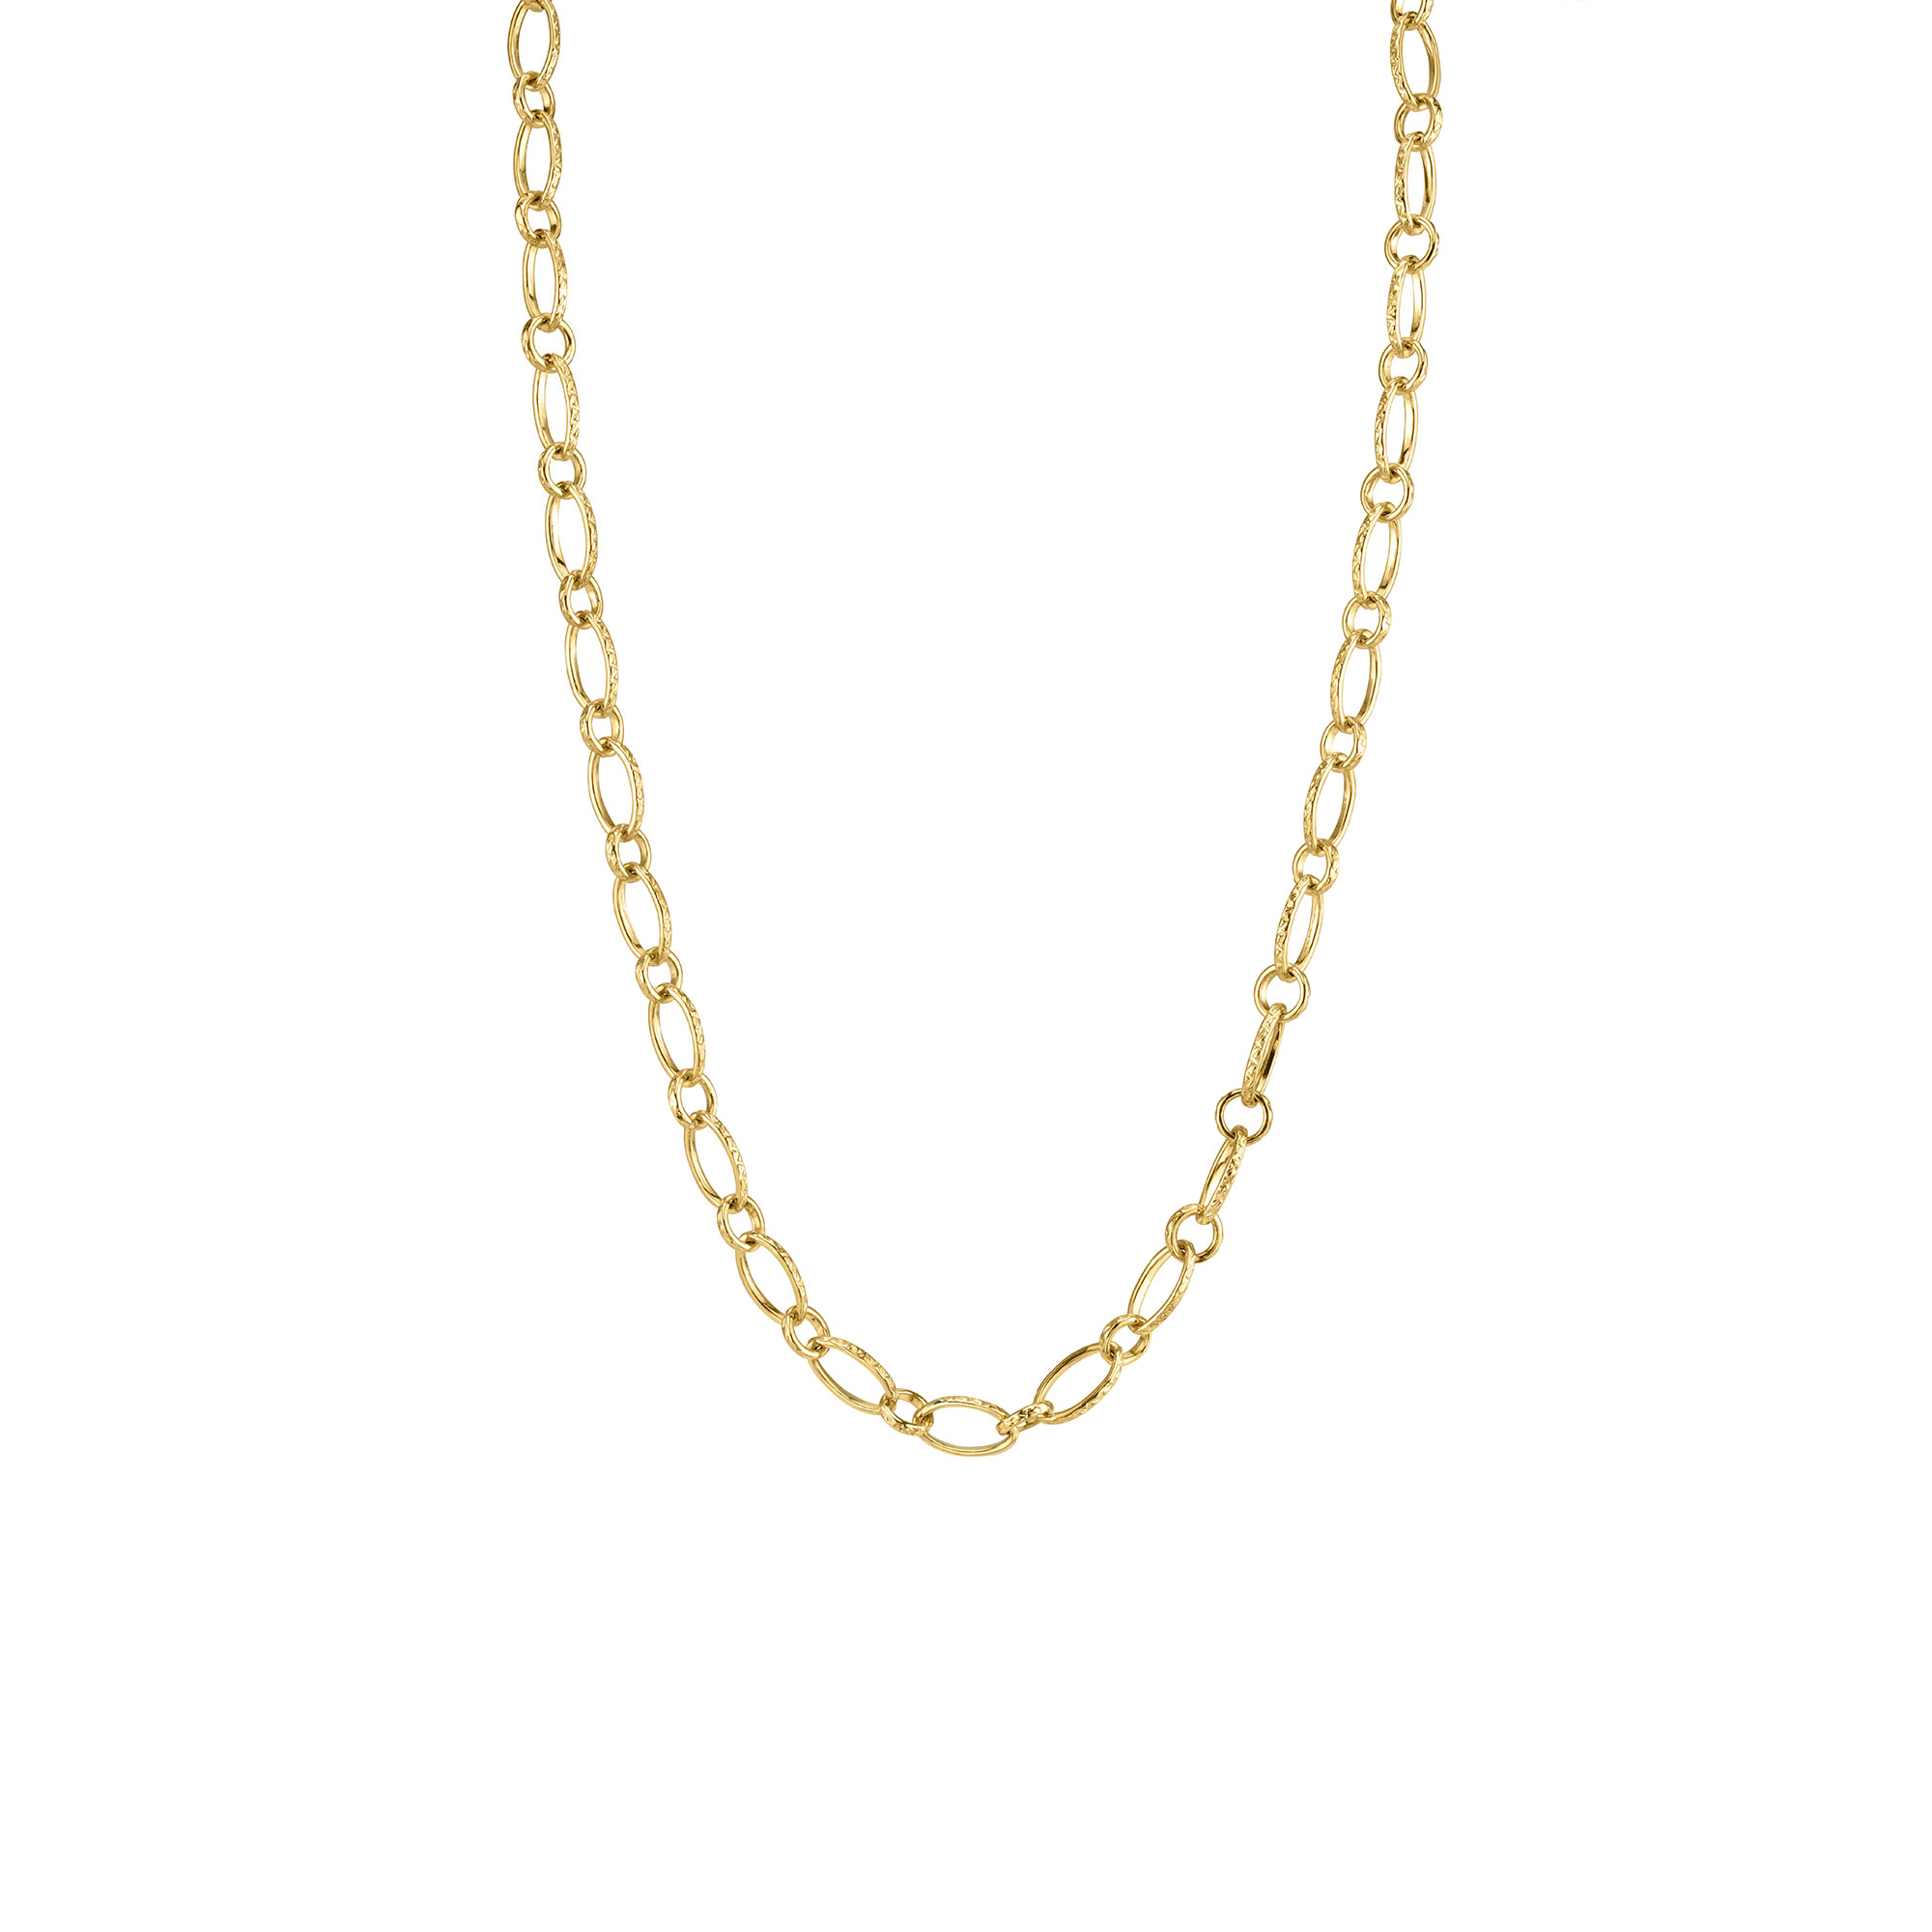 Sloan Street 18K Yellow Gold    Gold Necklace with Stones CH029-Y